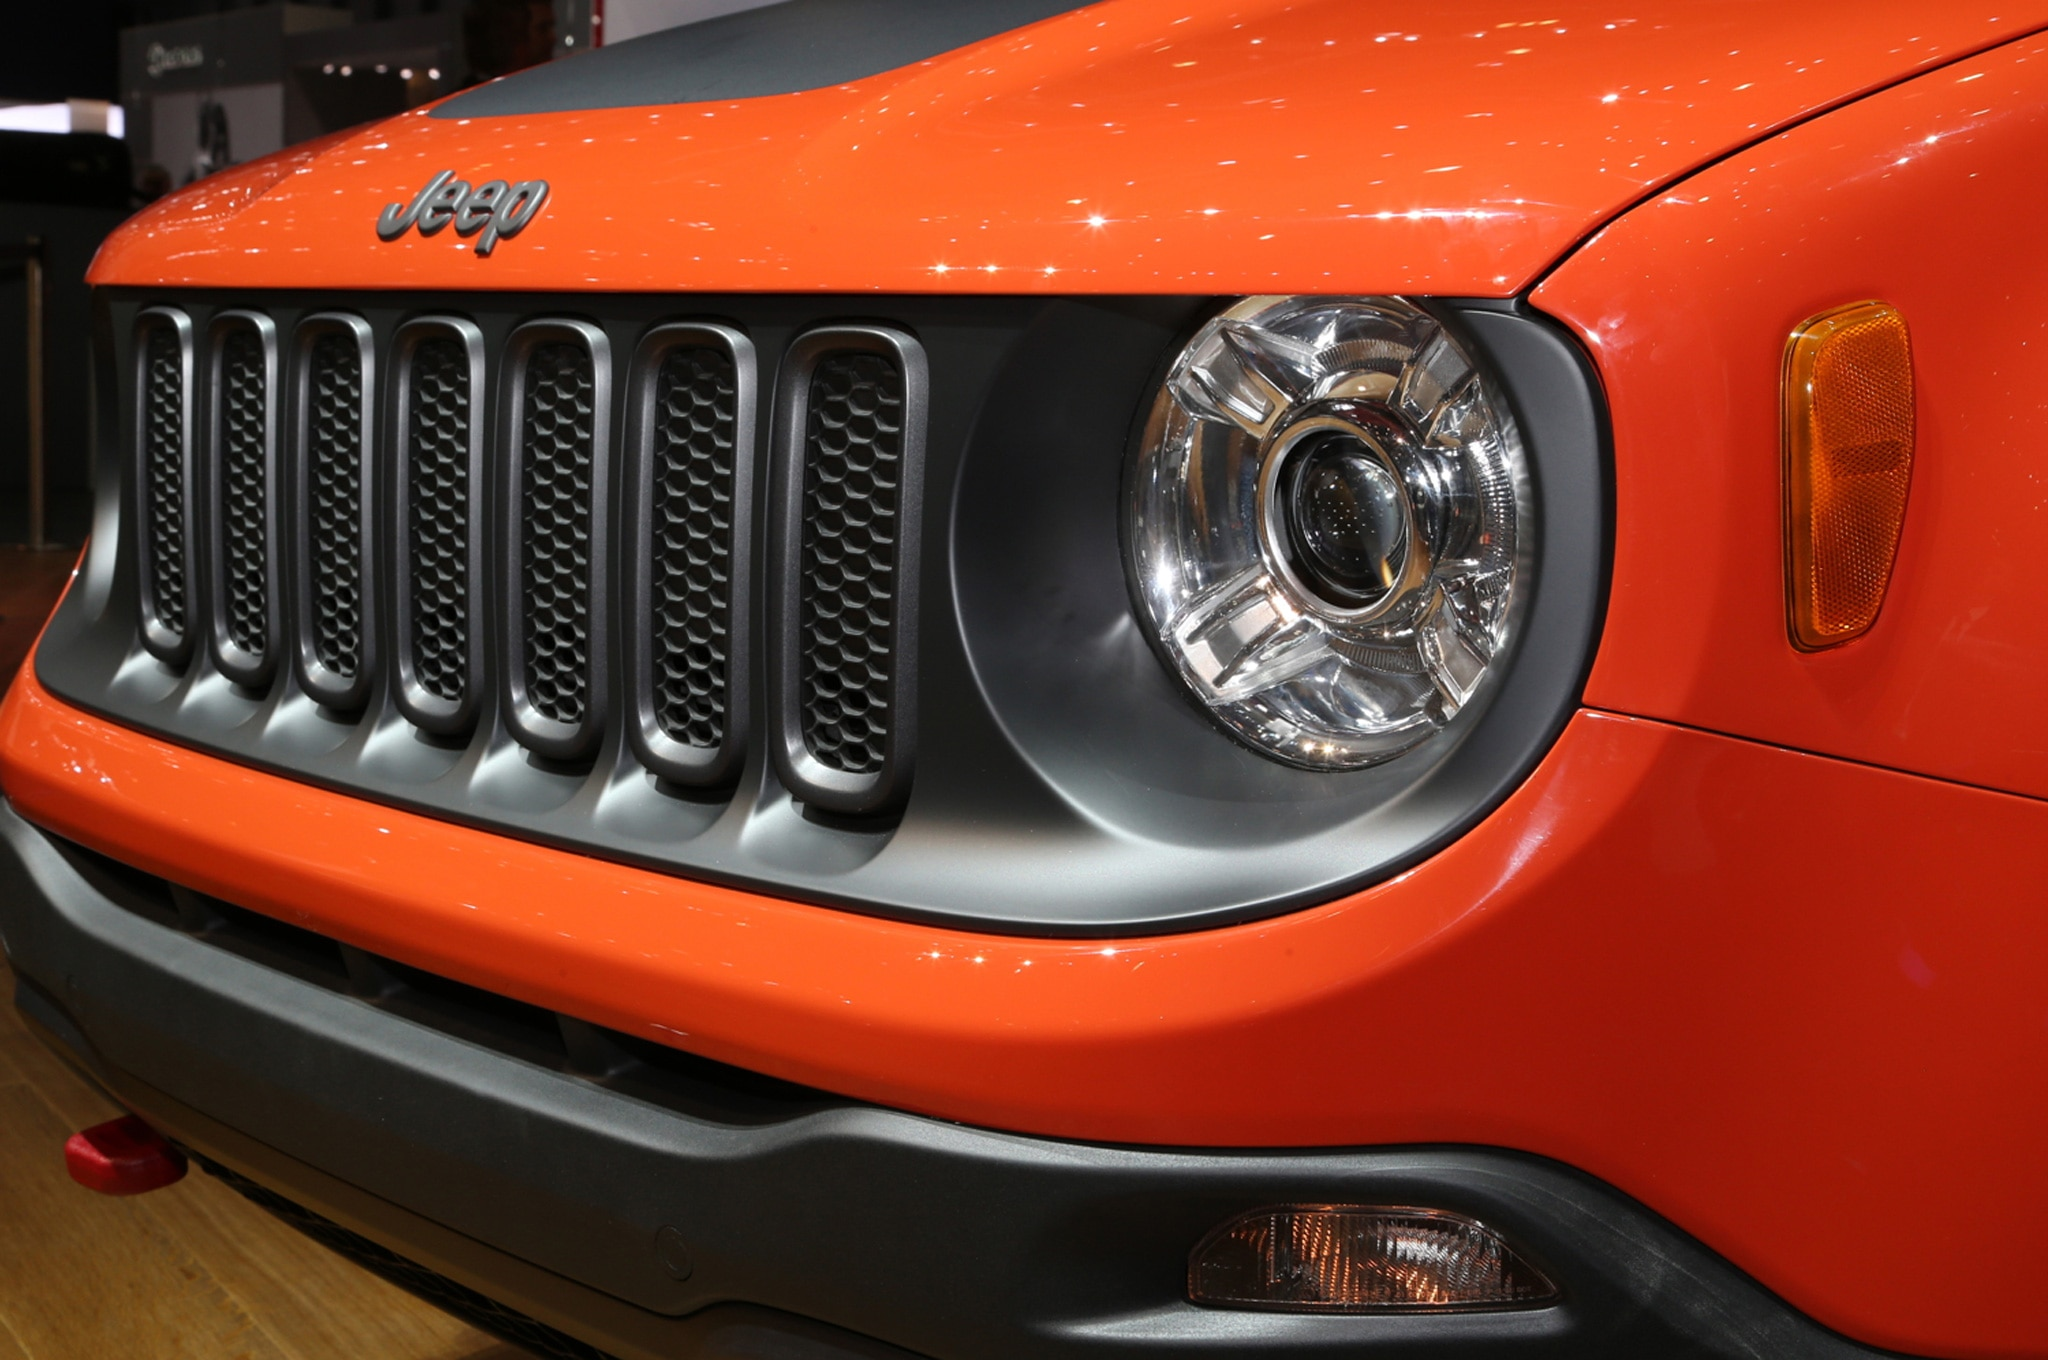 2015 Jeep Renegade Trailhawk show floor grille